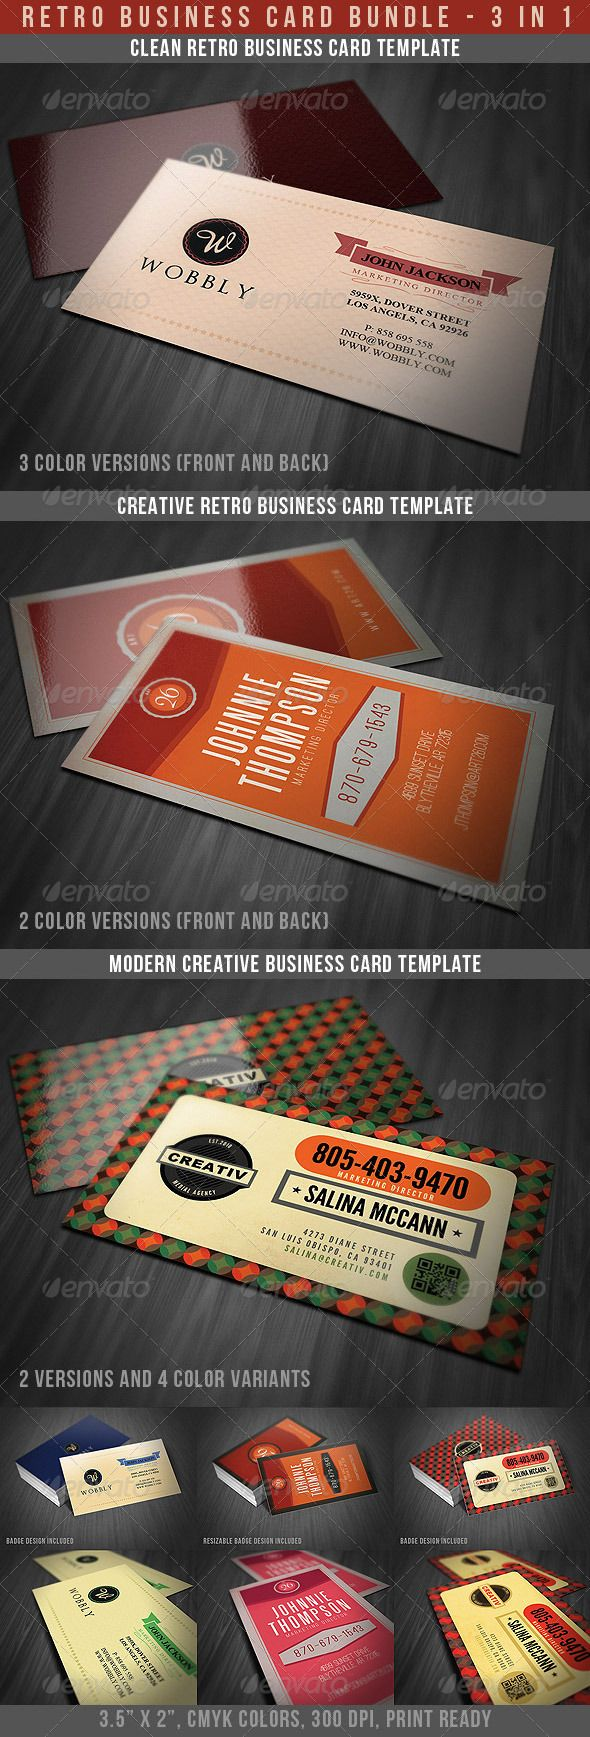 Retro Business Cards Bundle | Business cards, Unique business cards ...